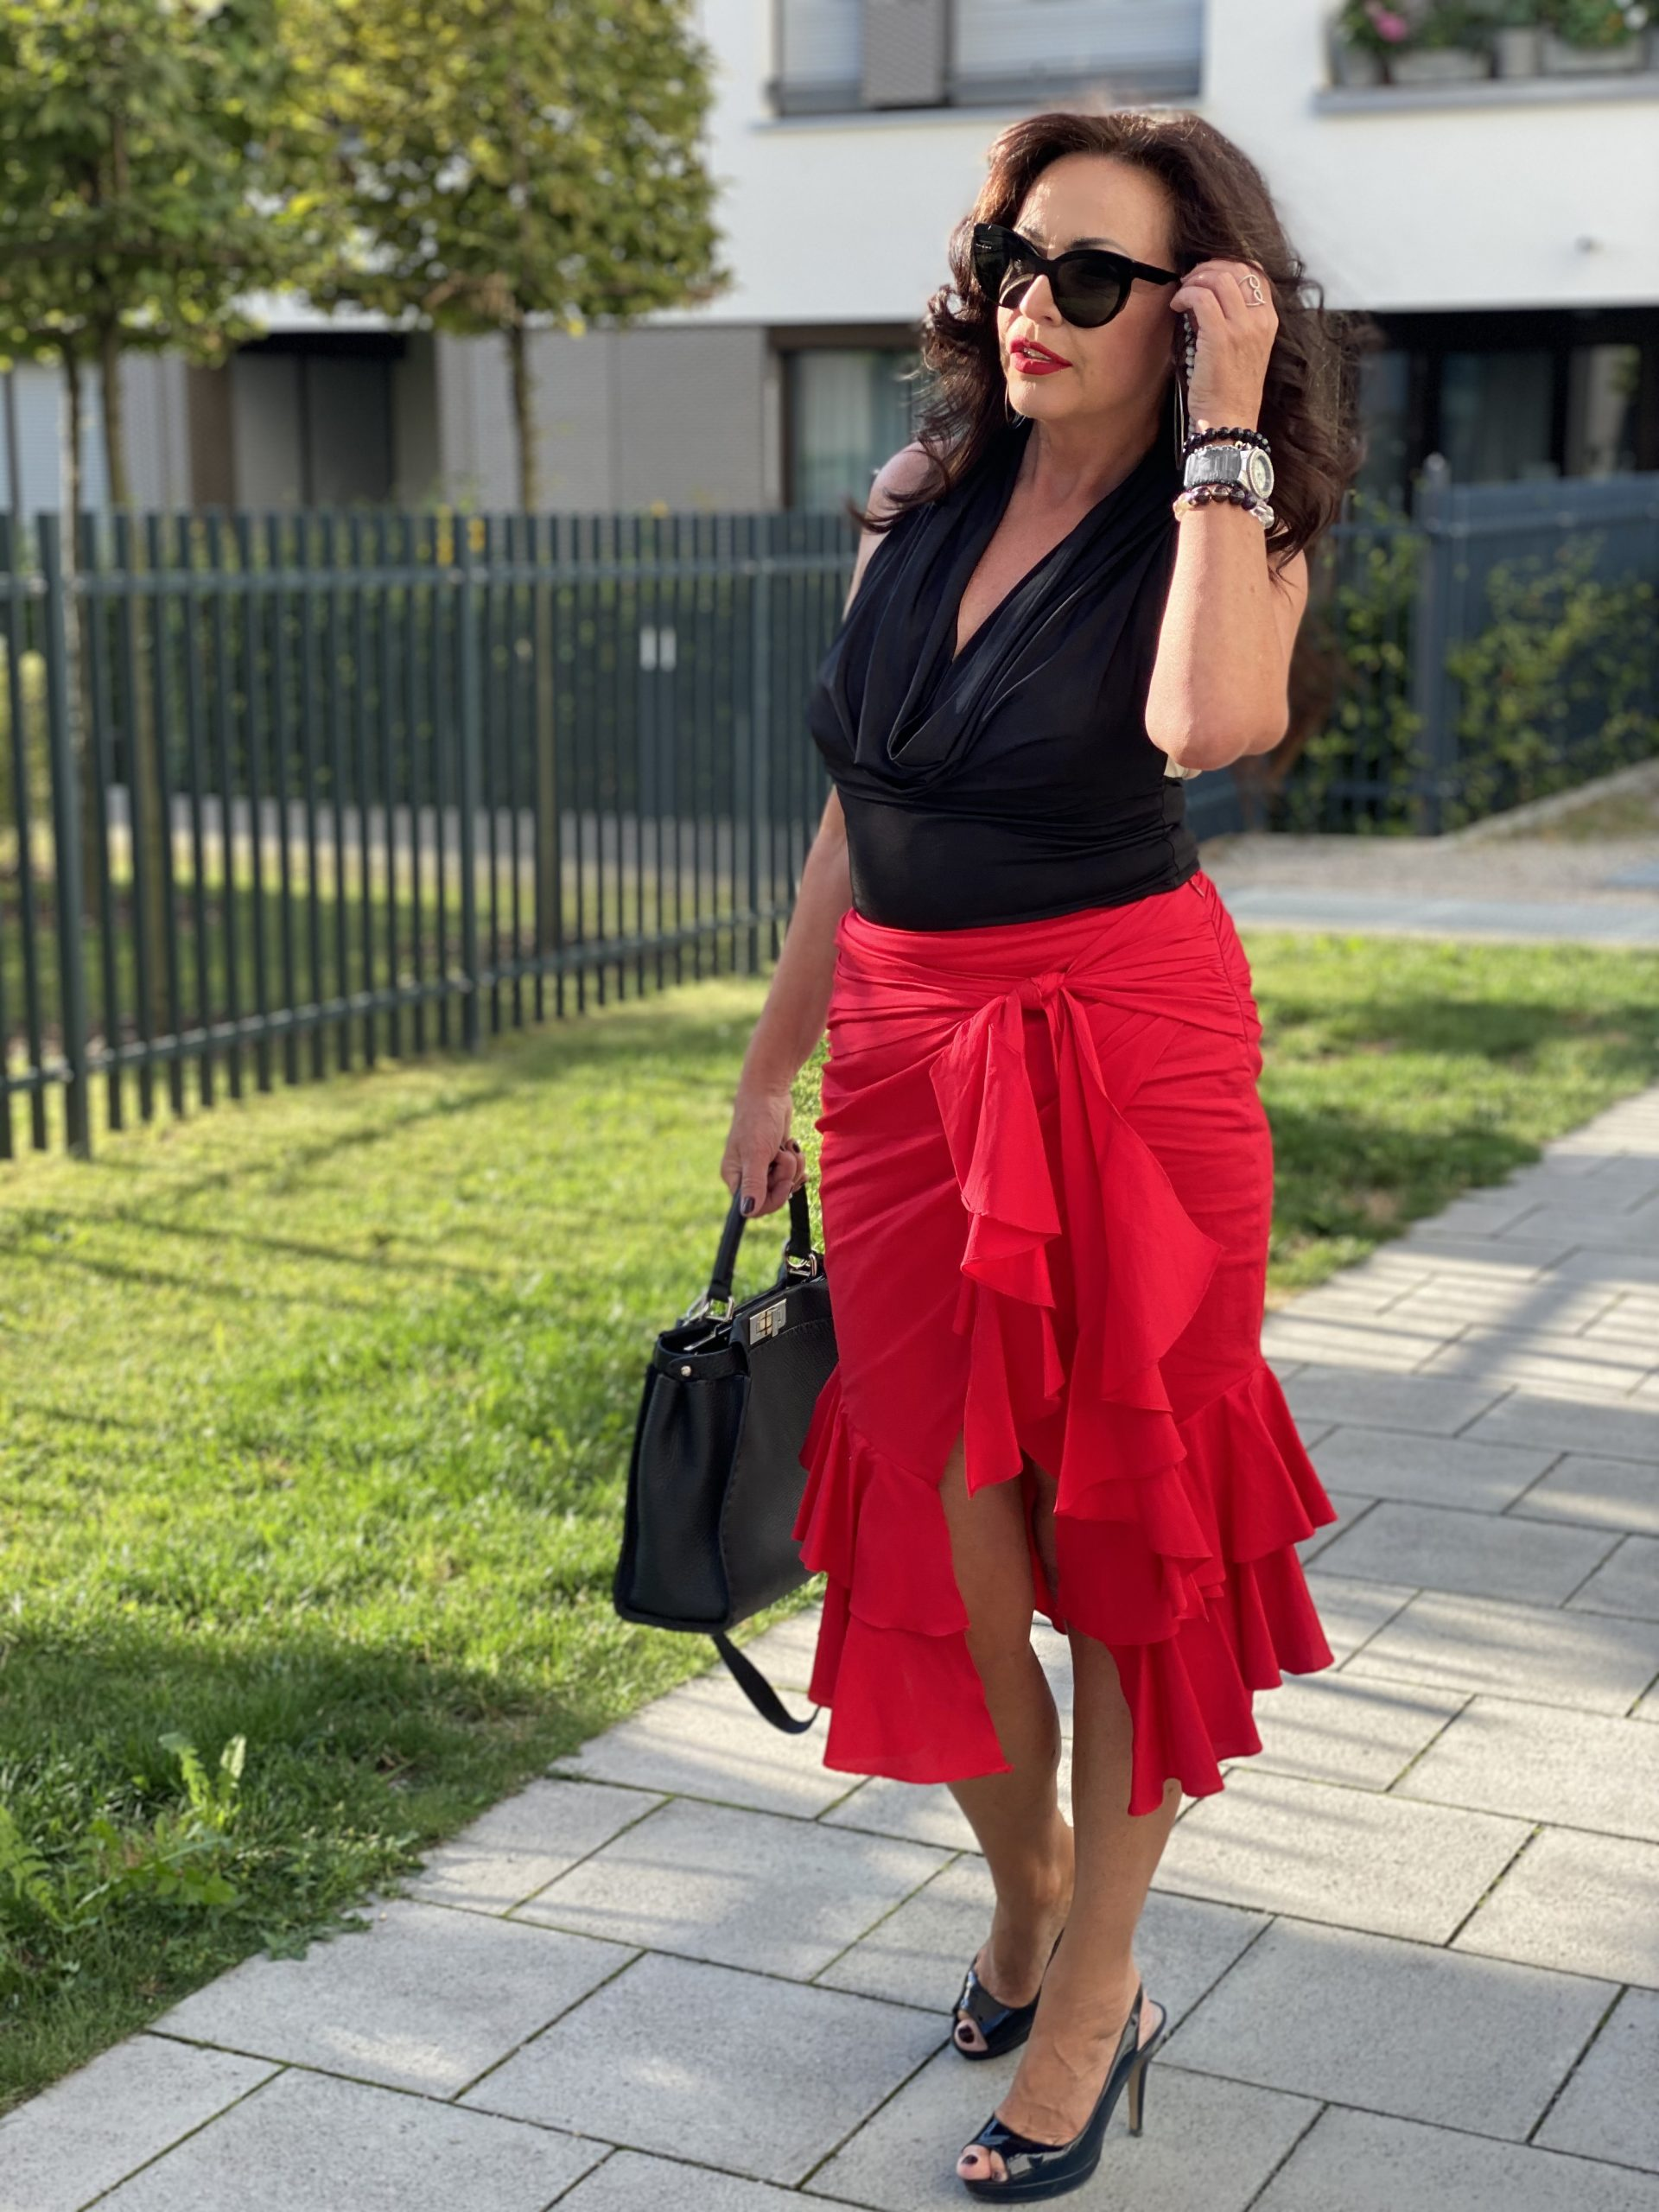 Intermix skirt, Stefanel top, Andy Wolf shades, Fendi Bag, Nine West shoes, mystyle, Fashion for ladies, Summerlook, Fashionblog Augsburg, cochastyle